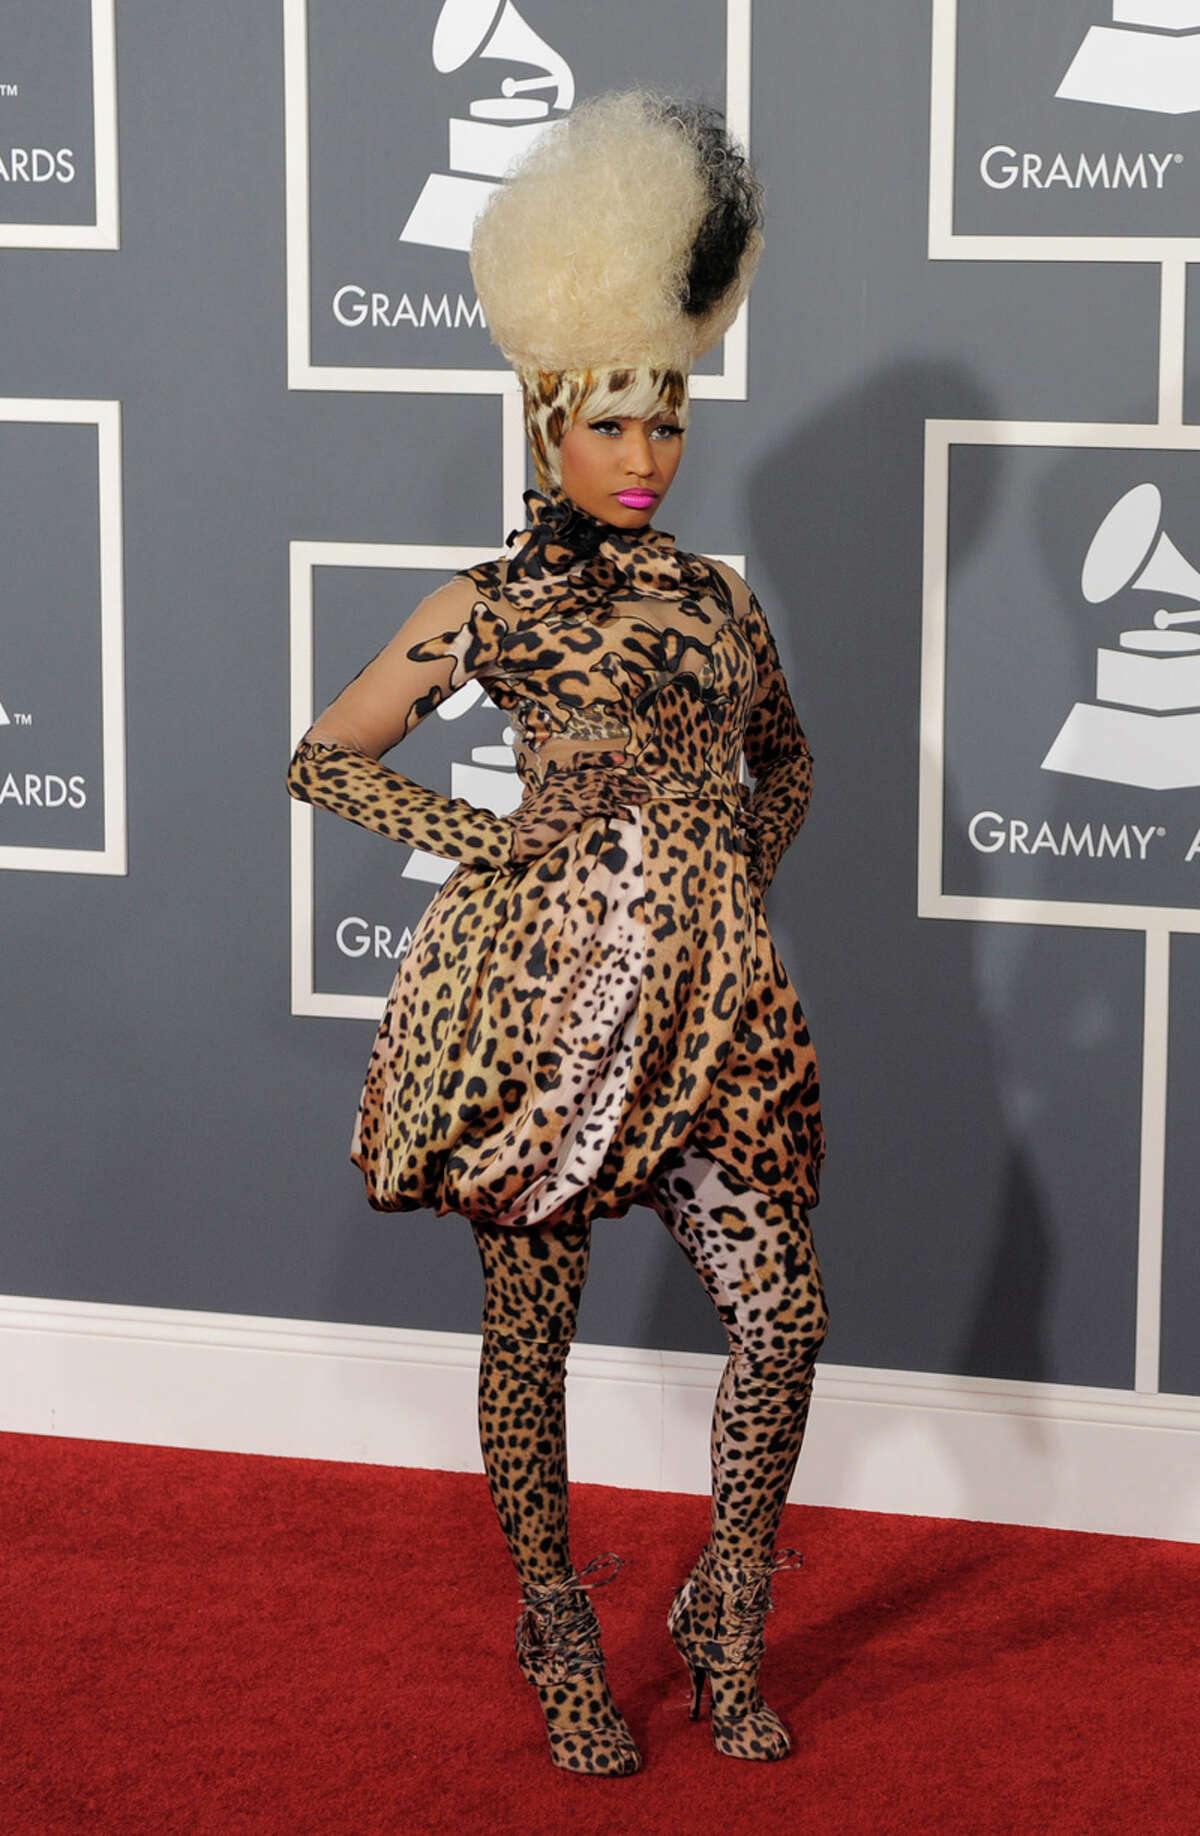 Bride of Frankenstein: Where do begin? At the top, of course, with Nicki Minaj's bride of Frankenstein-like wig with worked in leopard spot bangs. The spots-all in leopard by Givenchy-is proof positive of how not to wear a trend from head to toe. WORDS BY MICHAEL QUINTANILLA / EXPRESS-NEWS; PHOTO BY ASSOCIATED PRESS